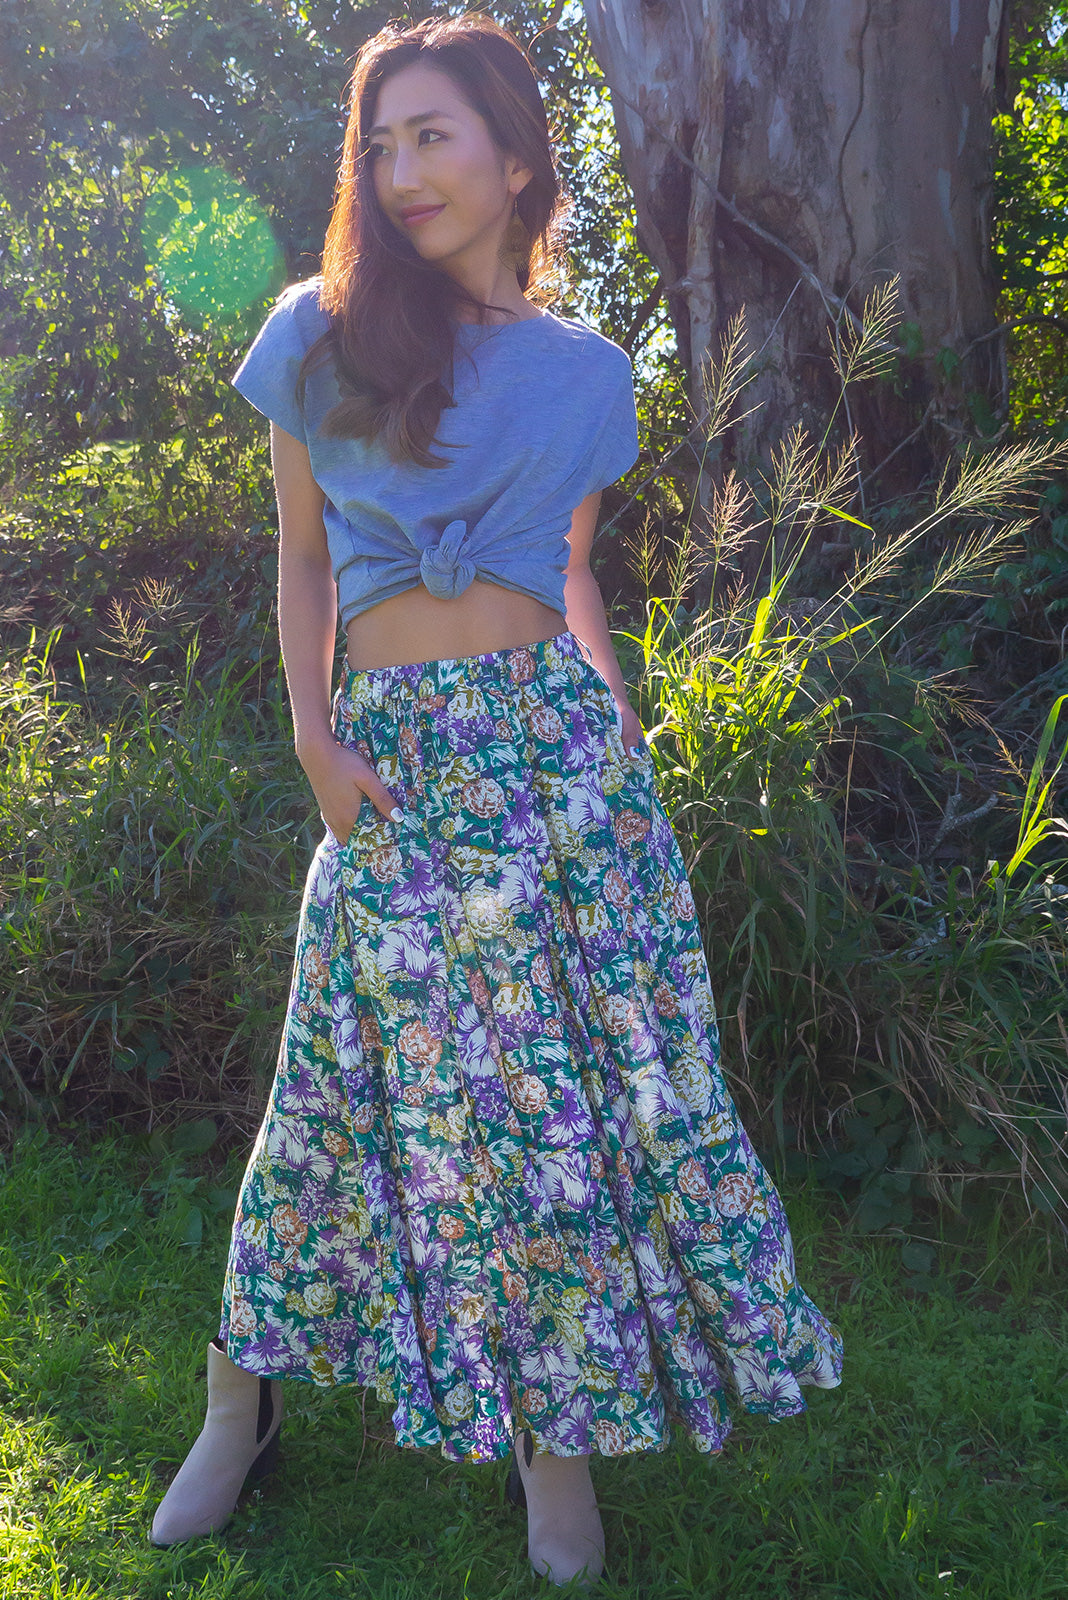 Avalon Grape Vine Skirt is a full and flowy midi length bohemian skirt. With a multicoloured floral pattern featured large bunches of grapes. Super girly quirky and fun. 100% rayon.